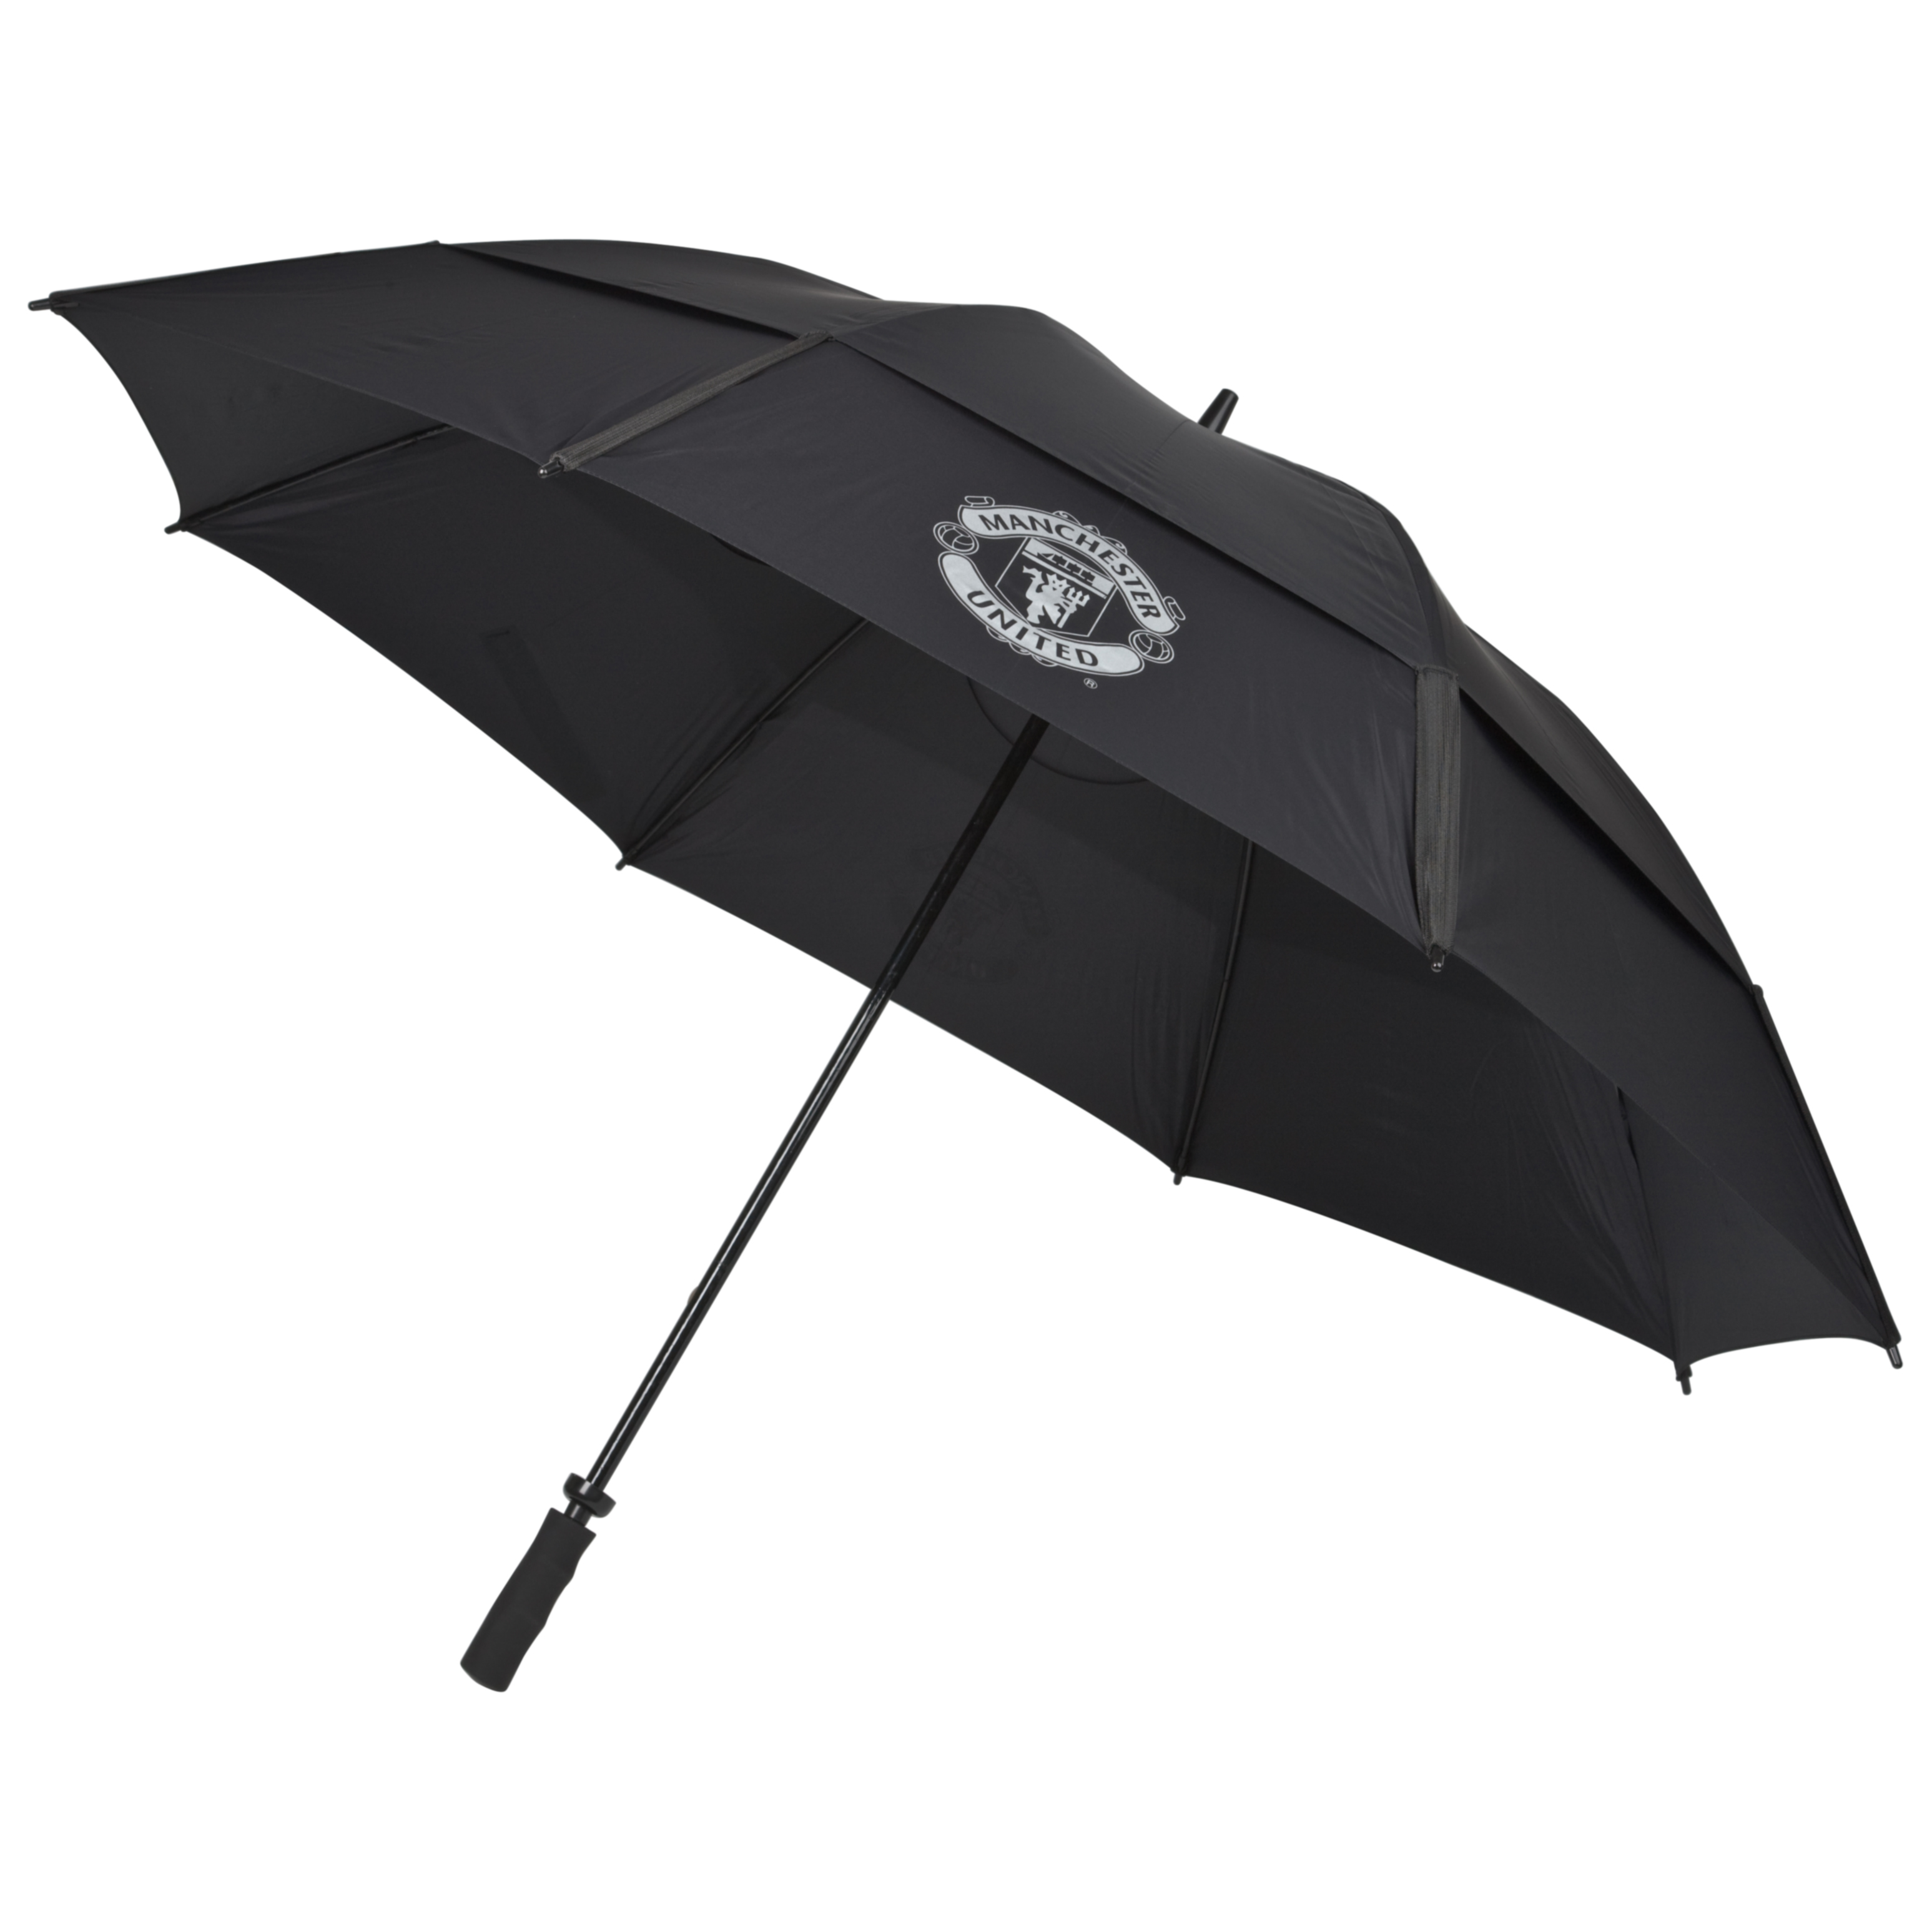 Manchester United Double Canopy Umbrella - Black/Silver